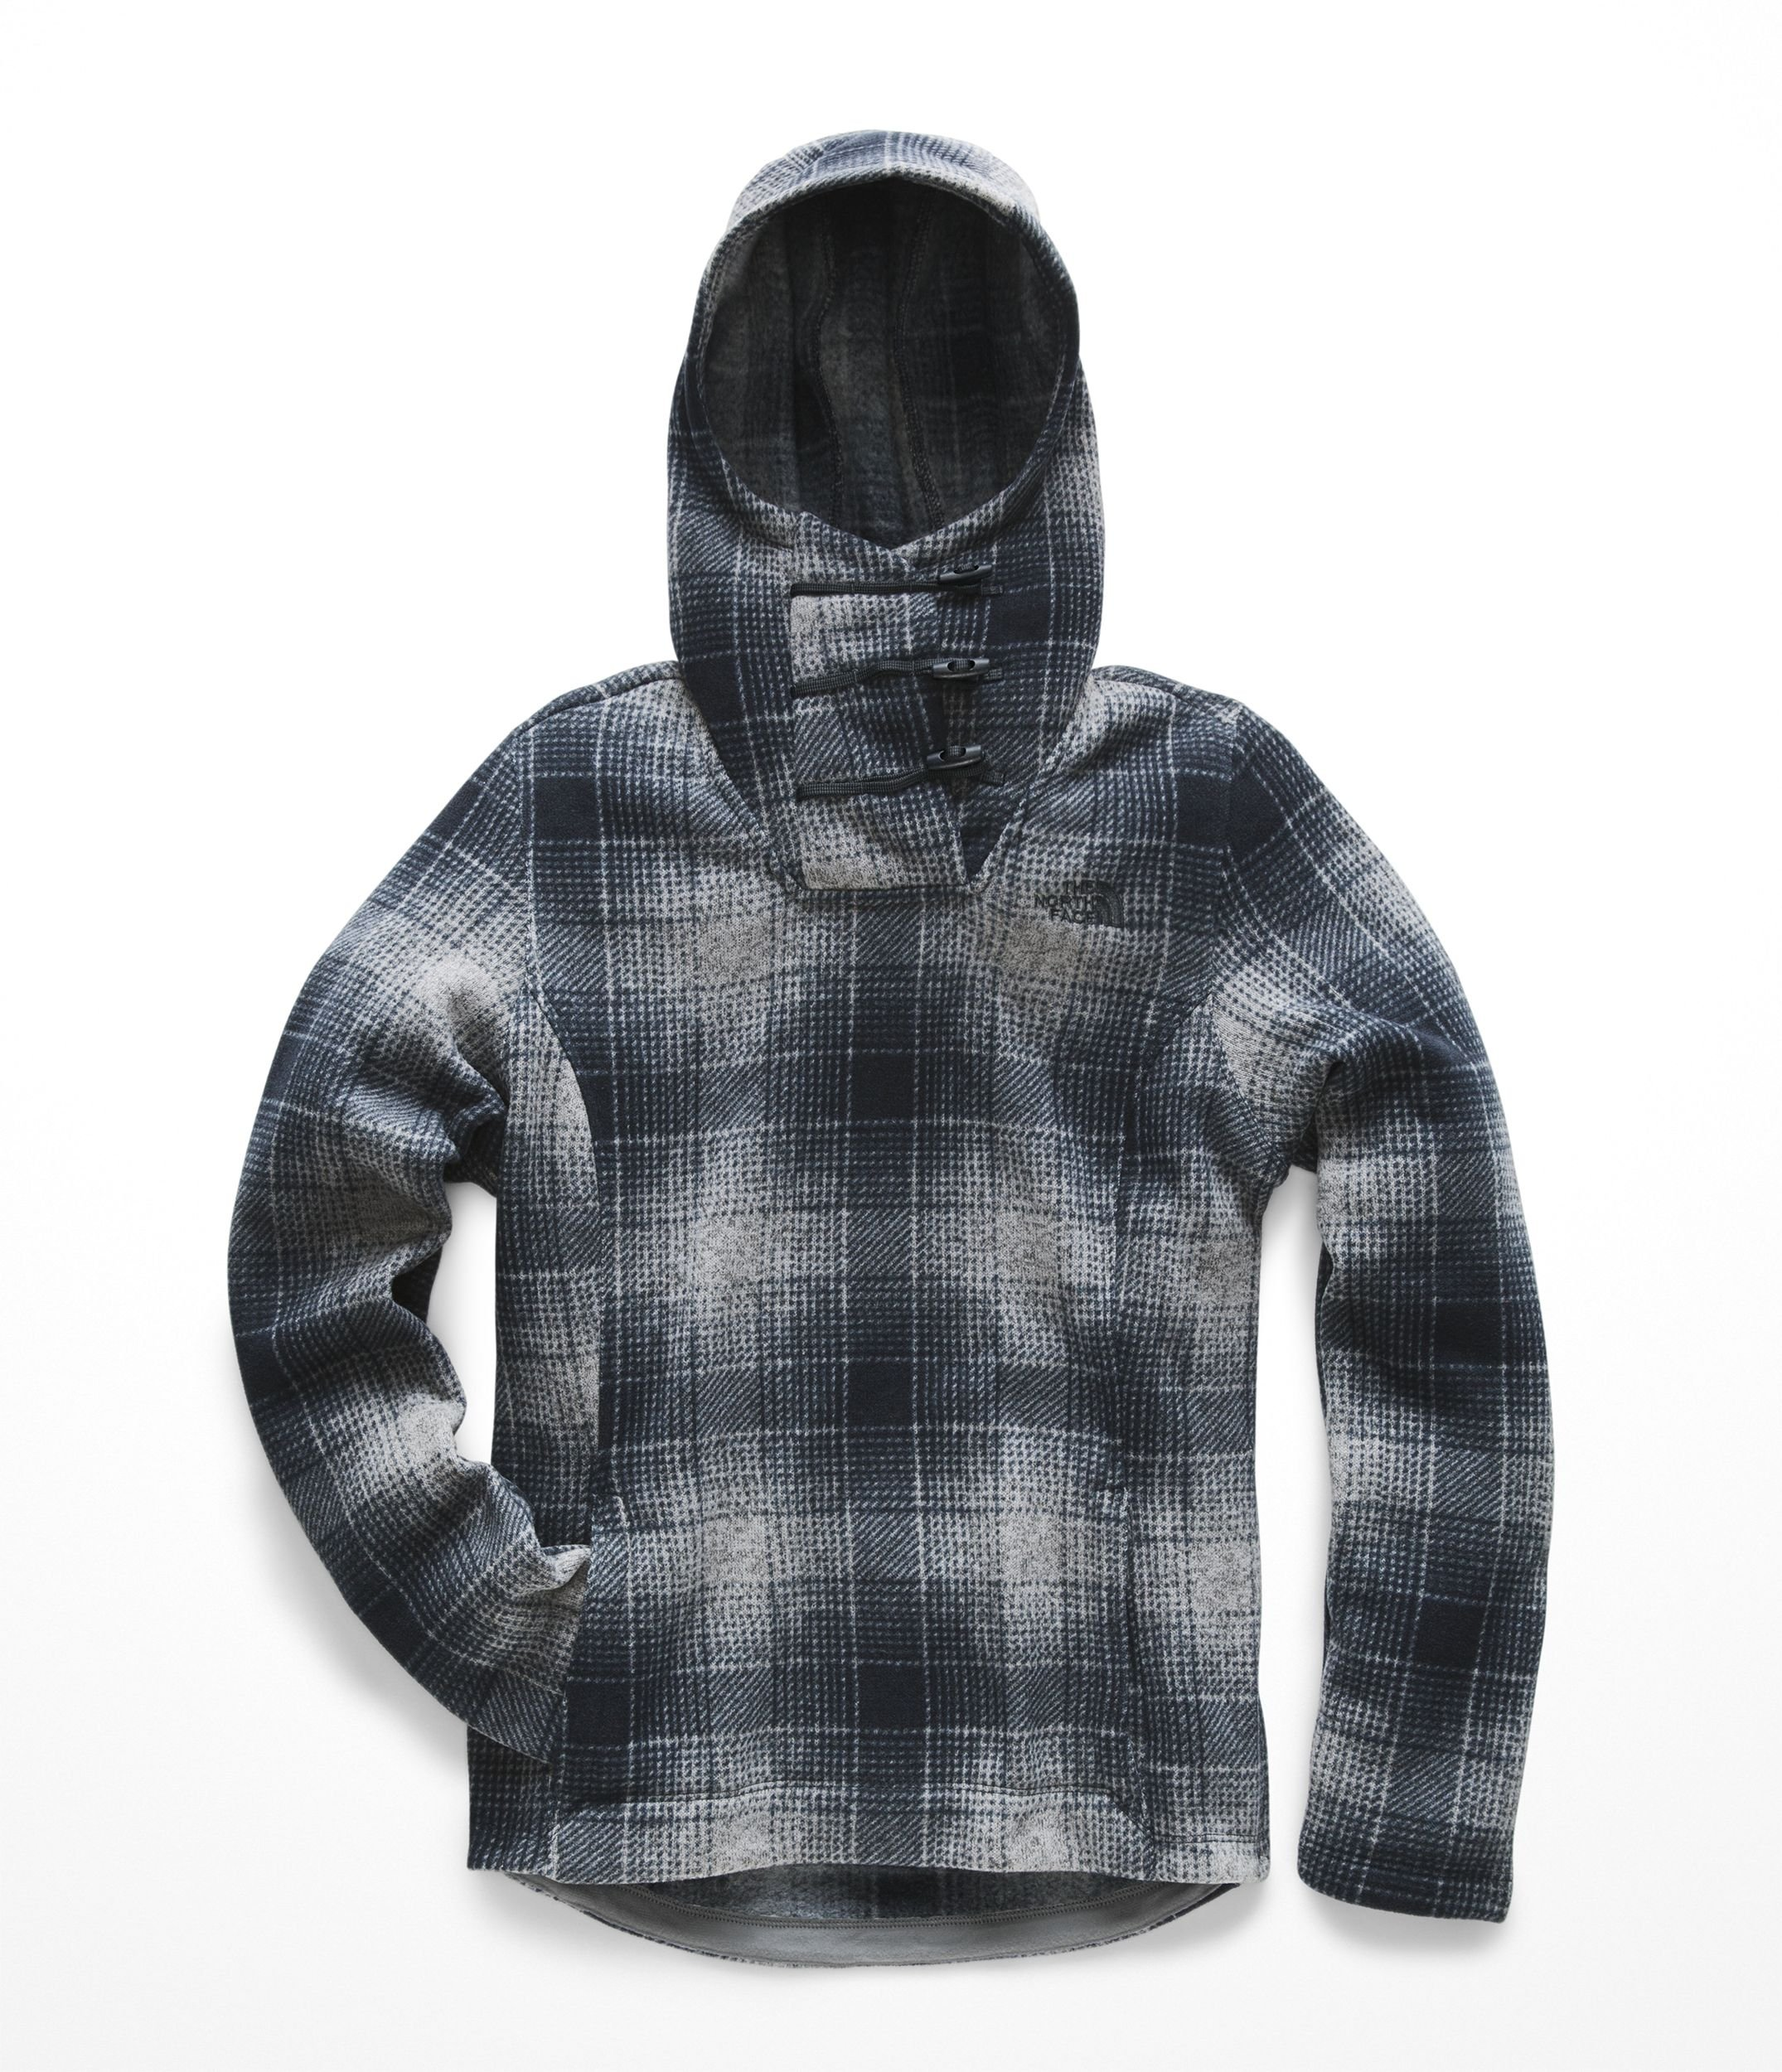 The North Face Womens Crescent Hooded Pullover - Mid Grey Ombre Plaid Small Print - XS